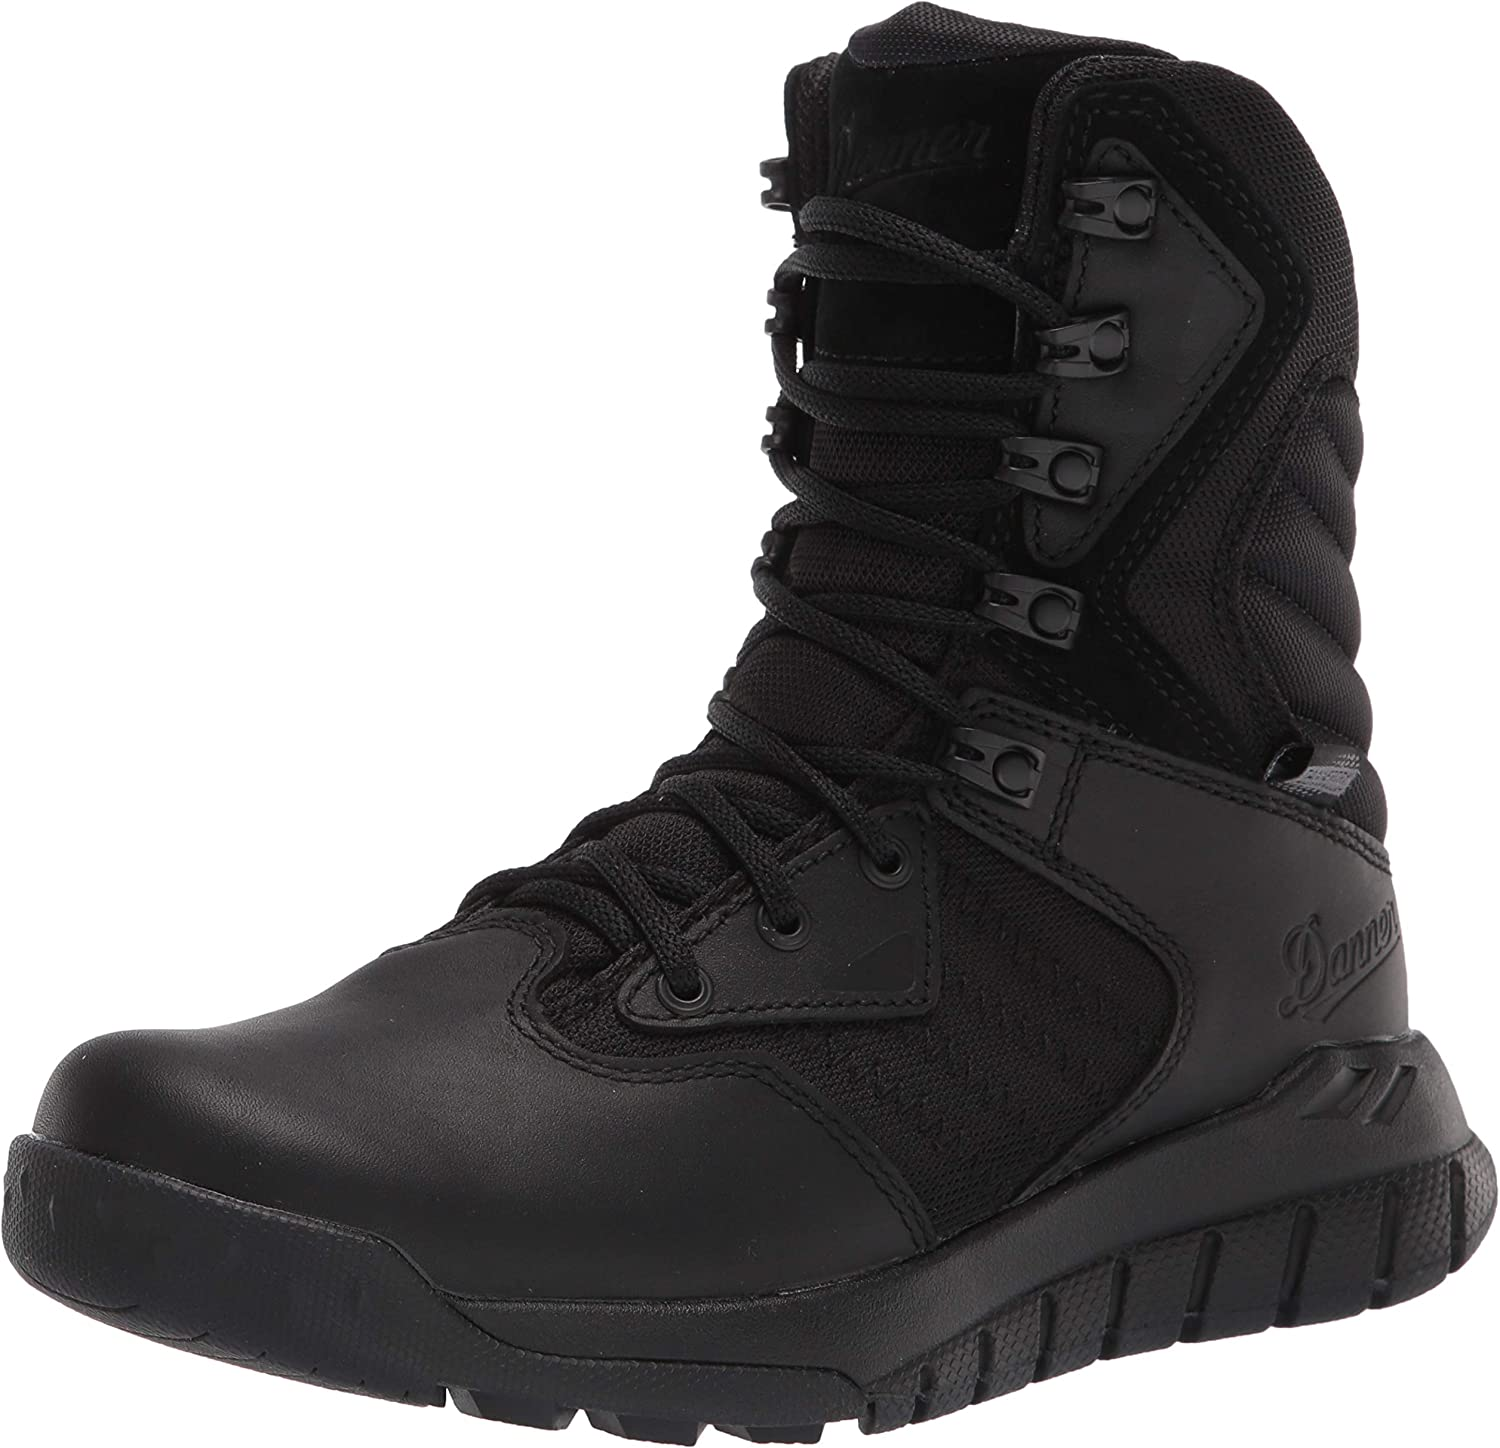 Danner mens High quality Military and Tactical US Boot 7 Wide outlet Black